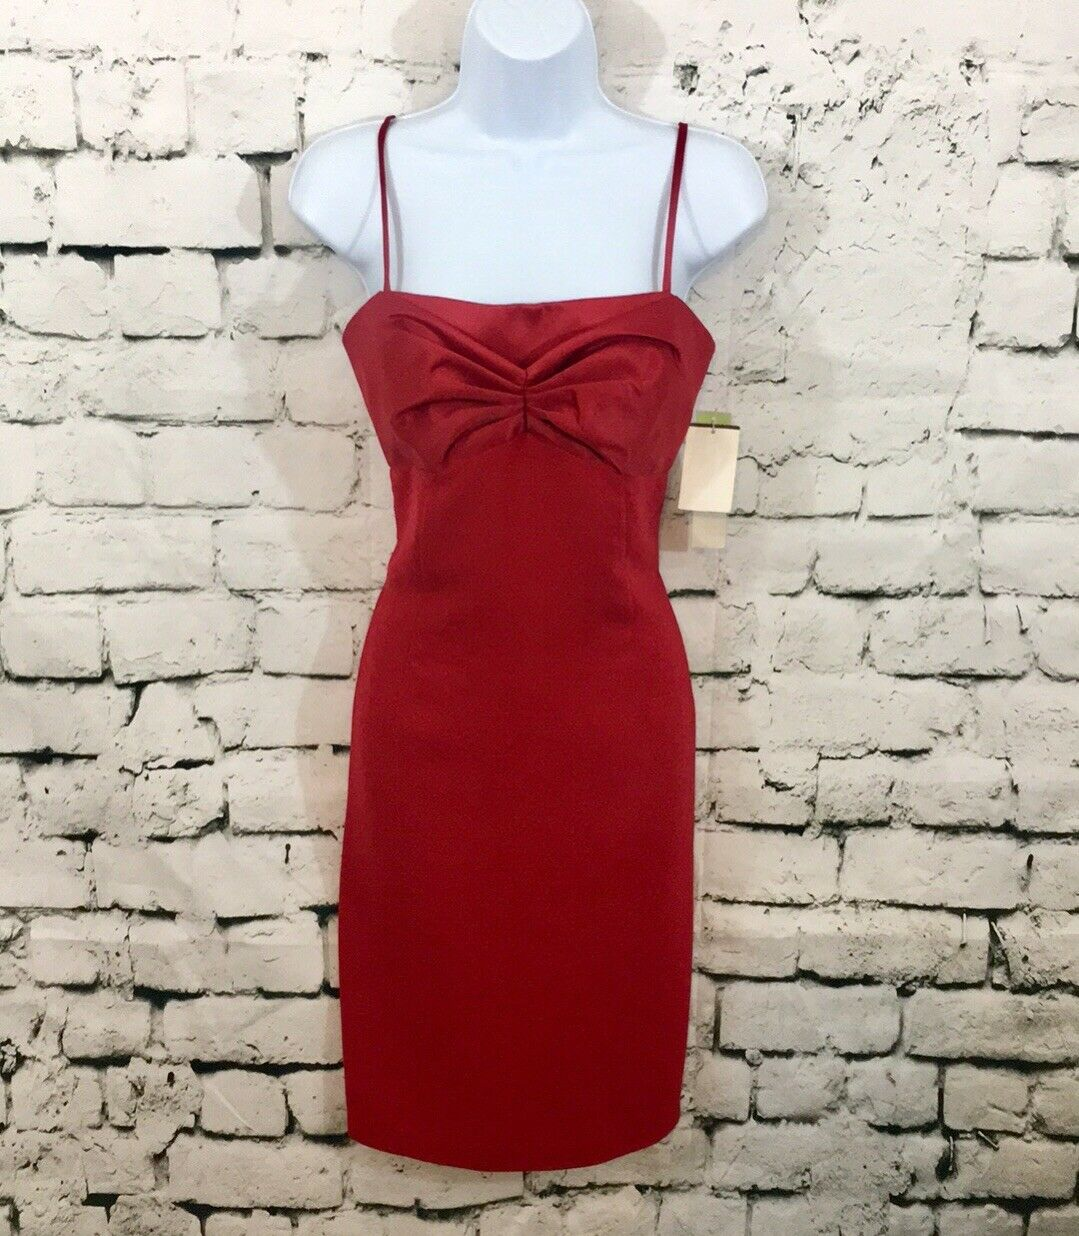 Maggy London NWT Größe 4 rot Holiday Dress New With Tags